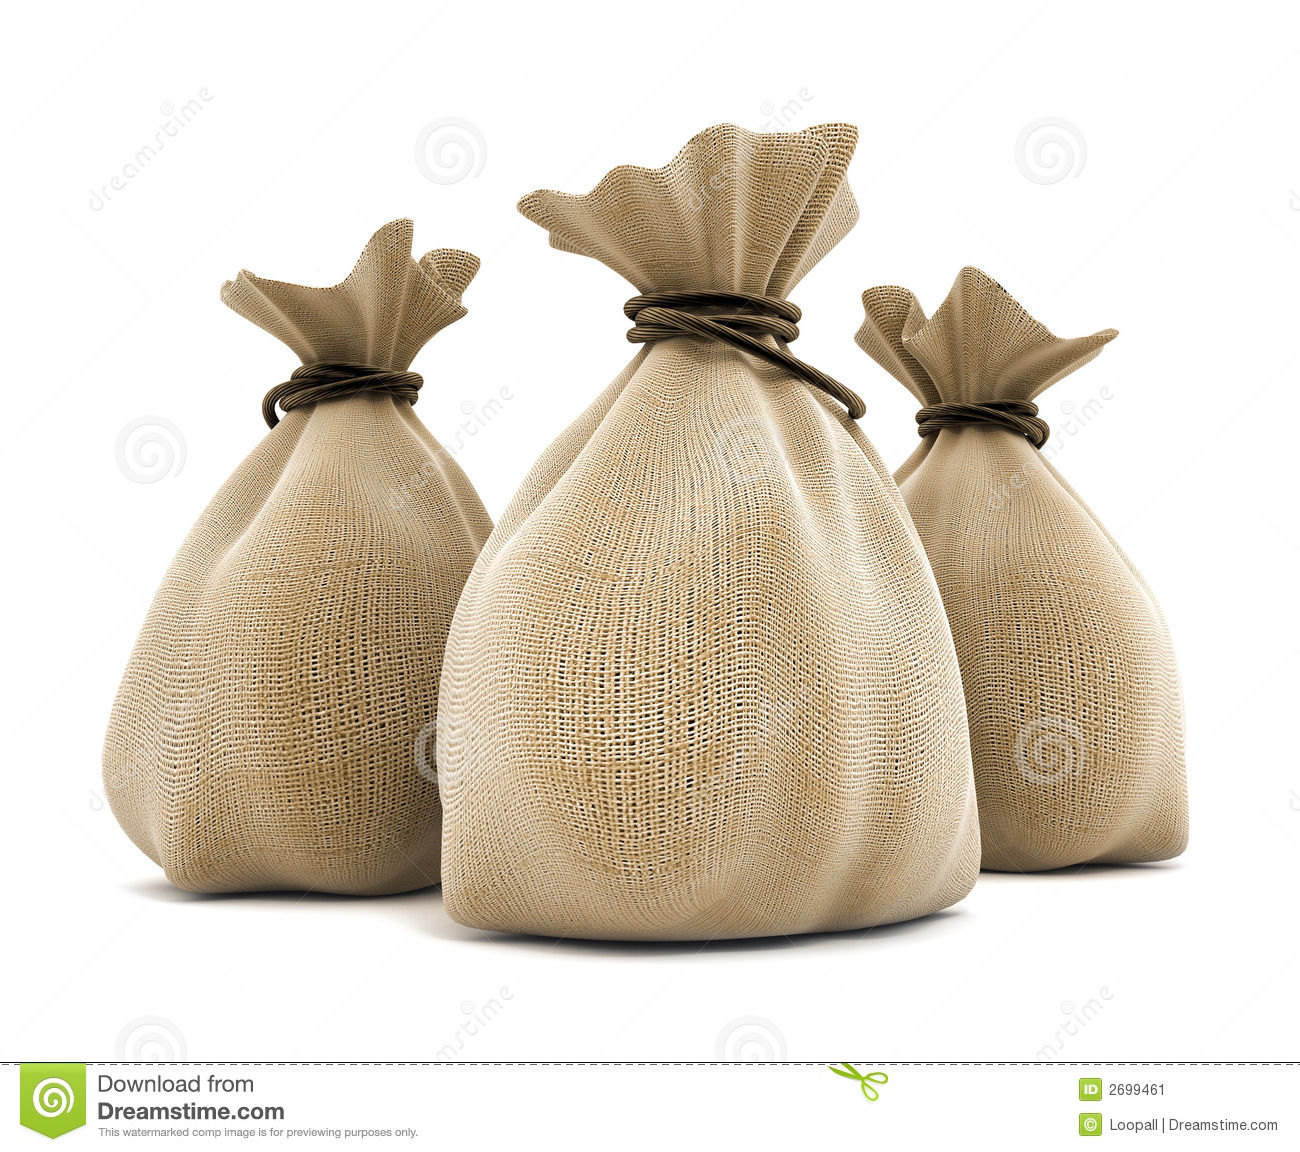 Full sacks agricultural isolated 3d model illustration.